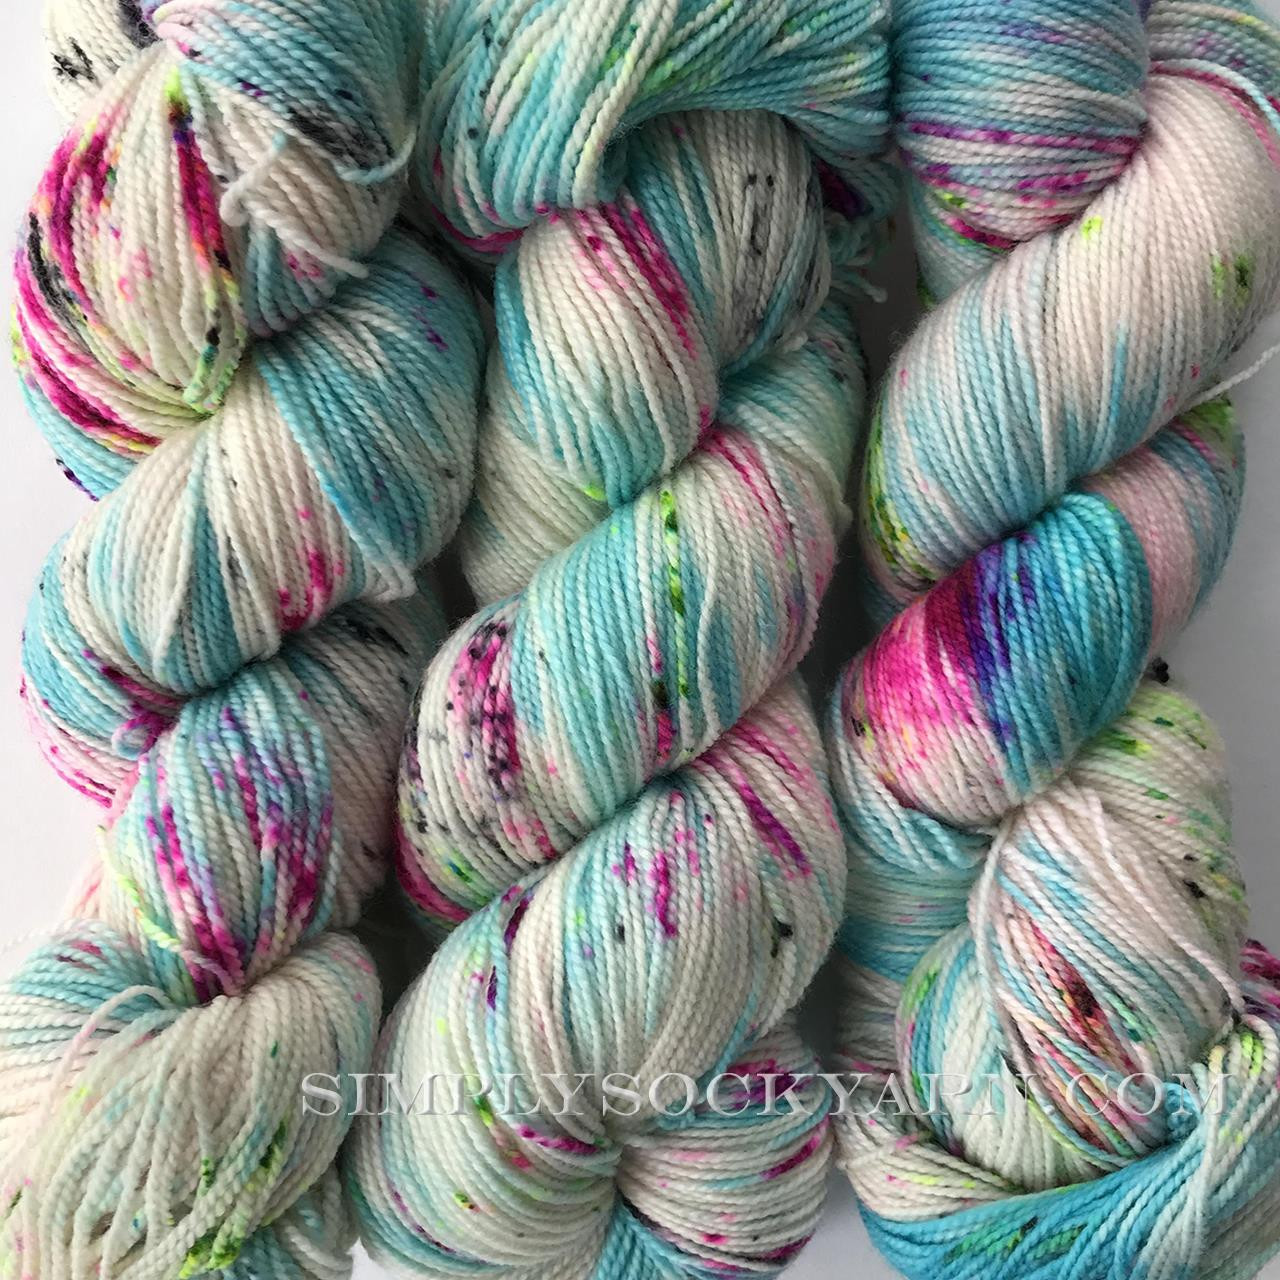 SY Bliss Sock Maui -